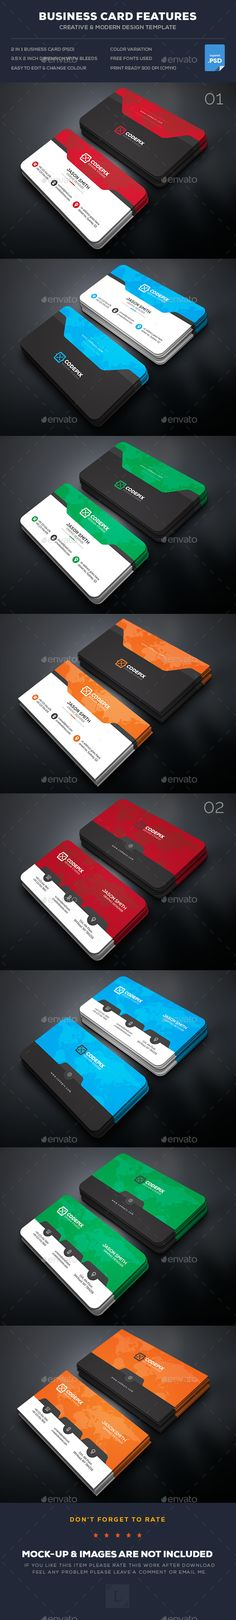 Soft Business Card Bundle Templates PSD. Download here: https://graphicriver.net/item/soft-business-card-bundle/17120689?ref=ksioks